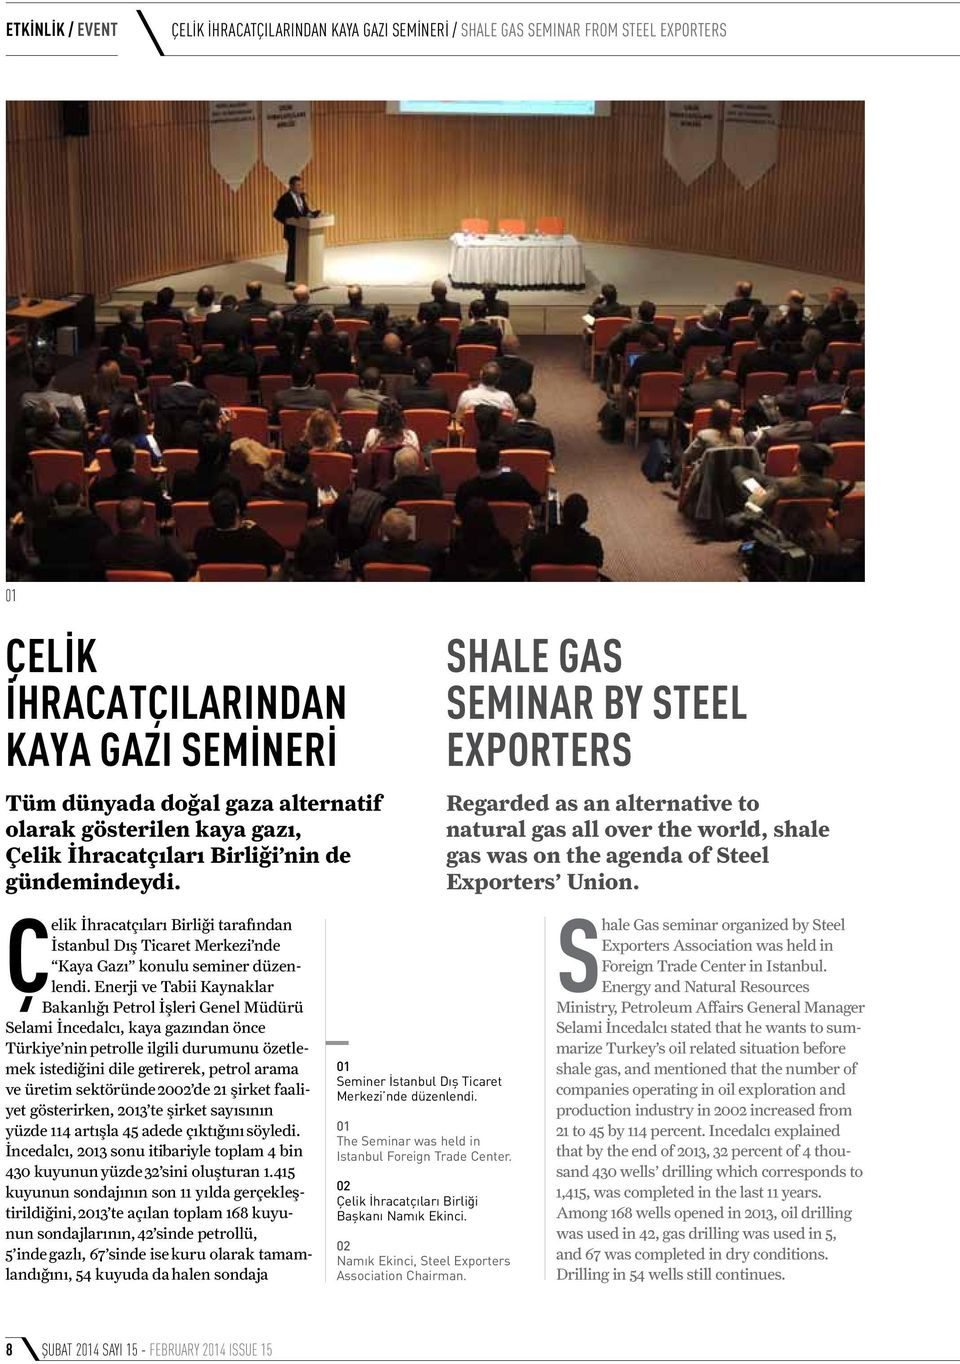 SHALE GAS SEMINAR by STEEL EXPORTERS Regarded as an alternative to natural gas all over the world, shale gas was on the agenda of Steel Exporters Union.